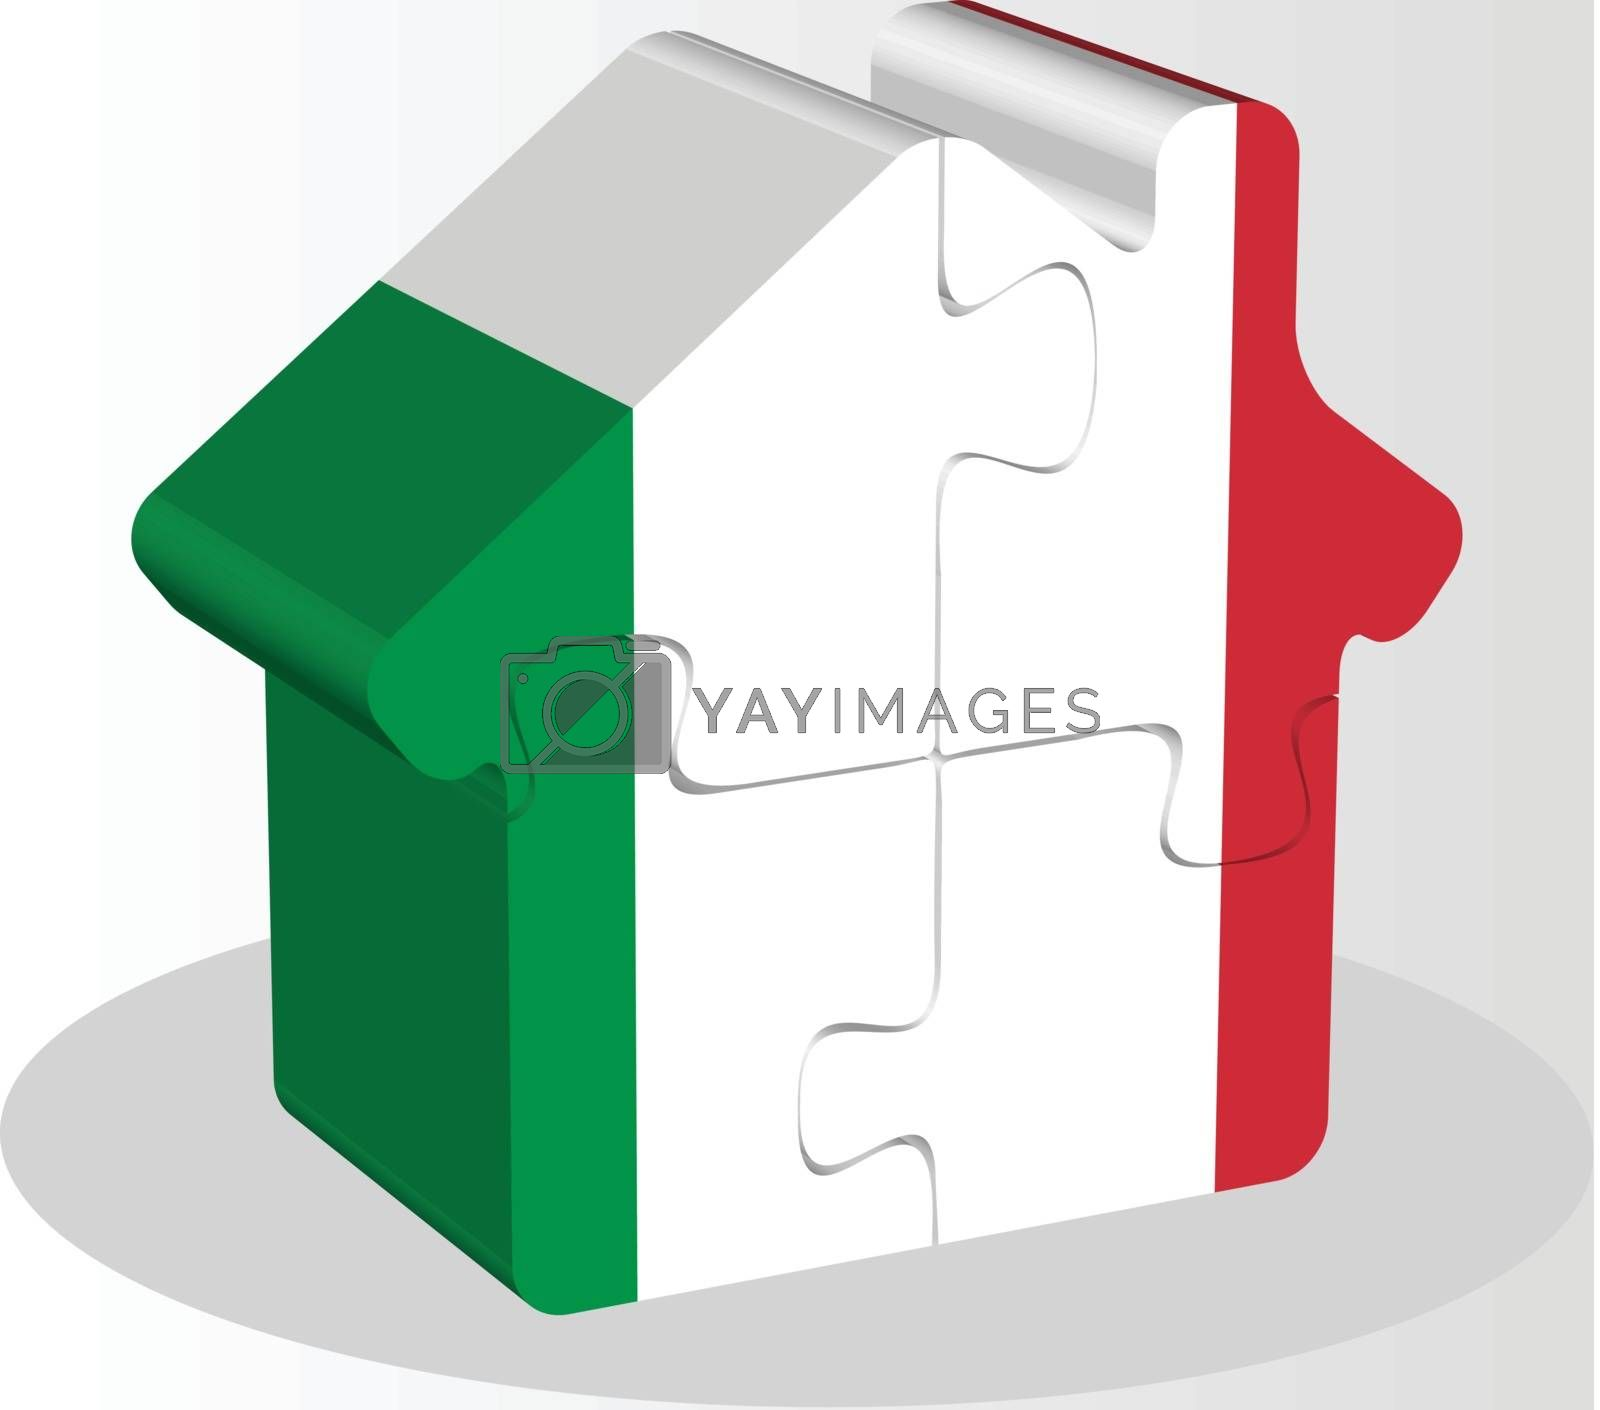 house home icon with Italy flag in puzzle by Istanbul2009